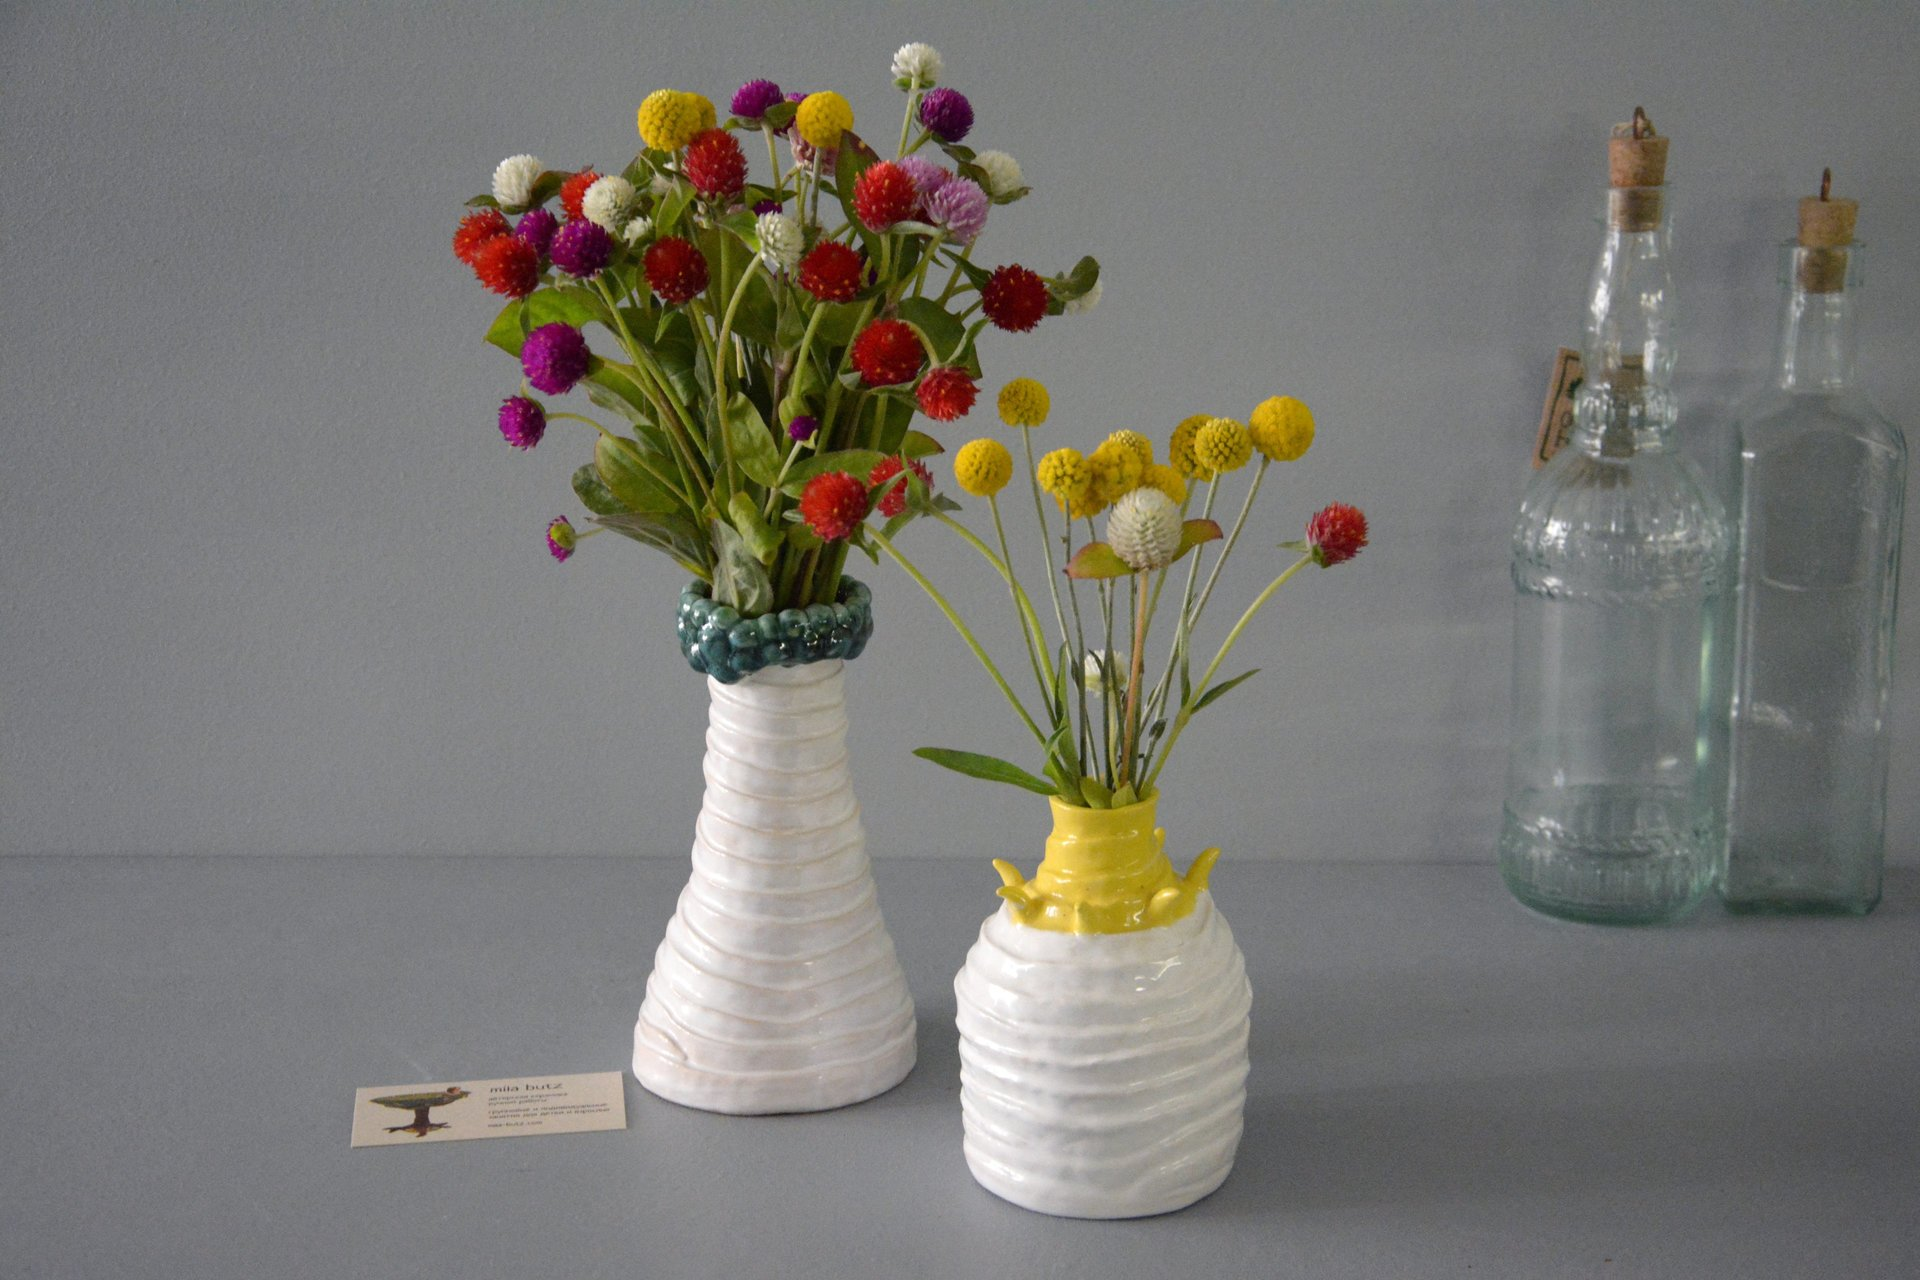 Decorative white-yellow vase Tourniquets, height - 13,5 cm, photo 7 of 7. 1252.